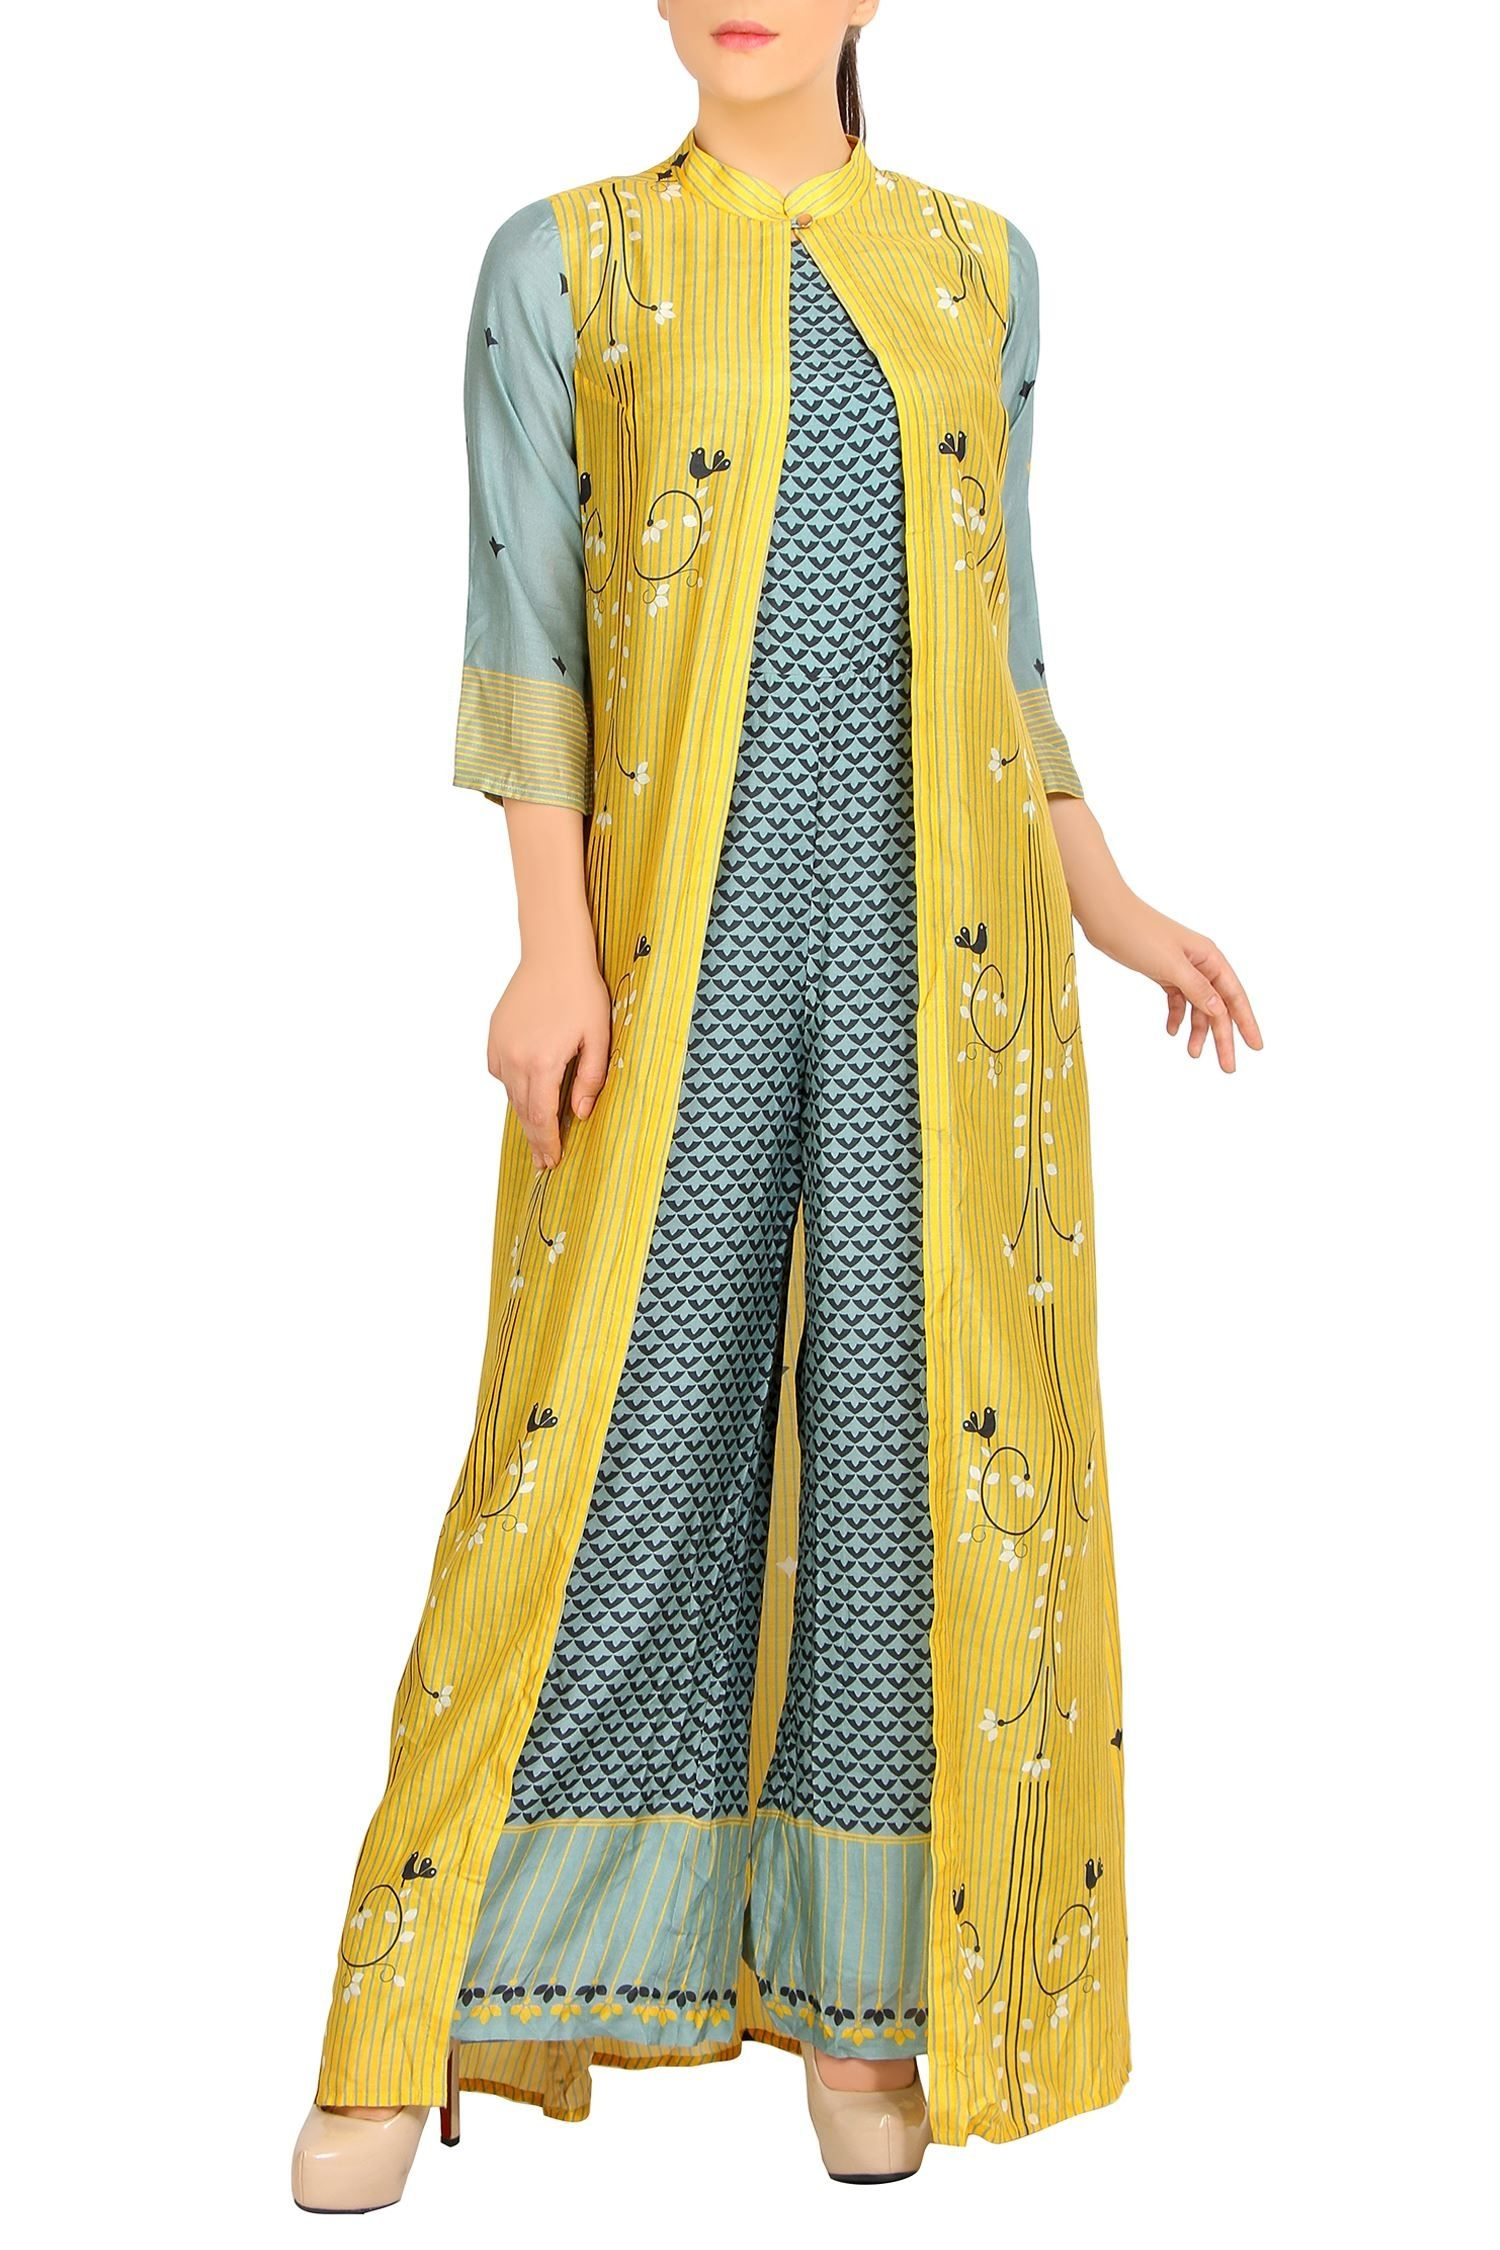 e1997dbaa5f8 Shop SOUP by Sougat Paul - Blue chanderi jumpsuit   printed jacket Latest  Collection Available at Aza Fashions